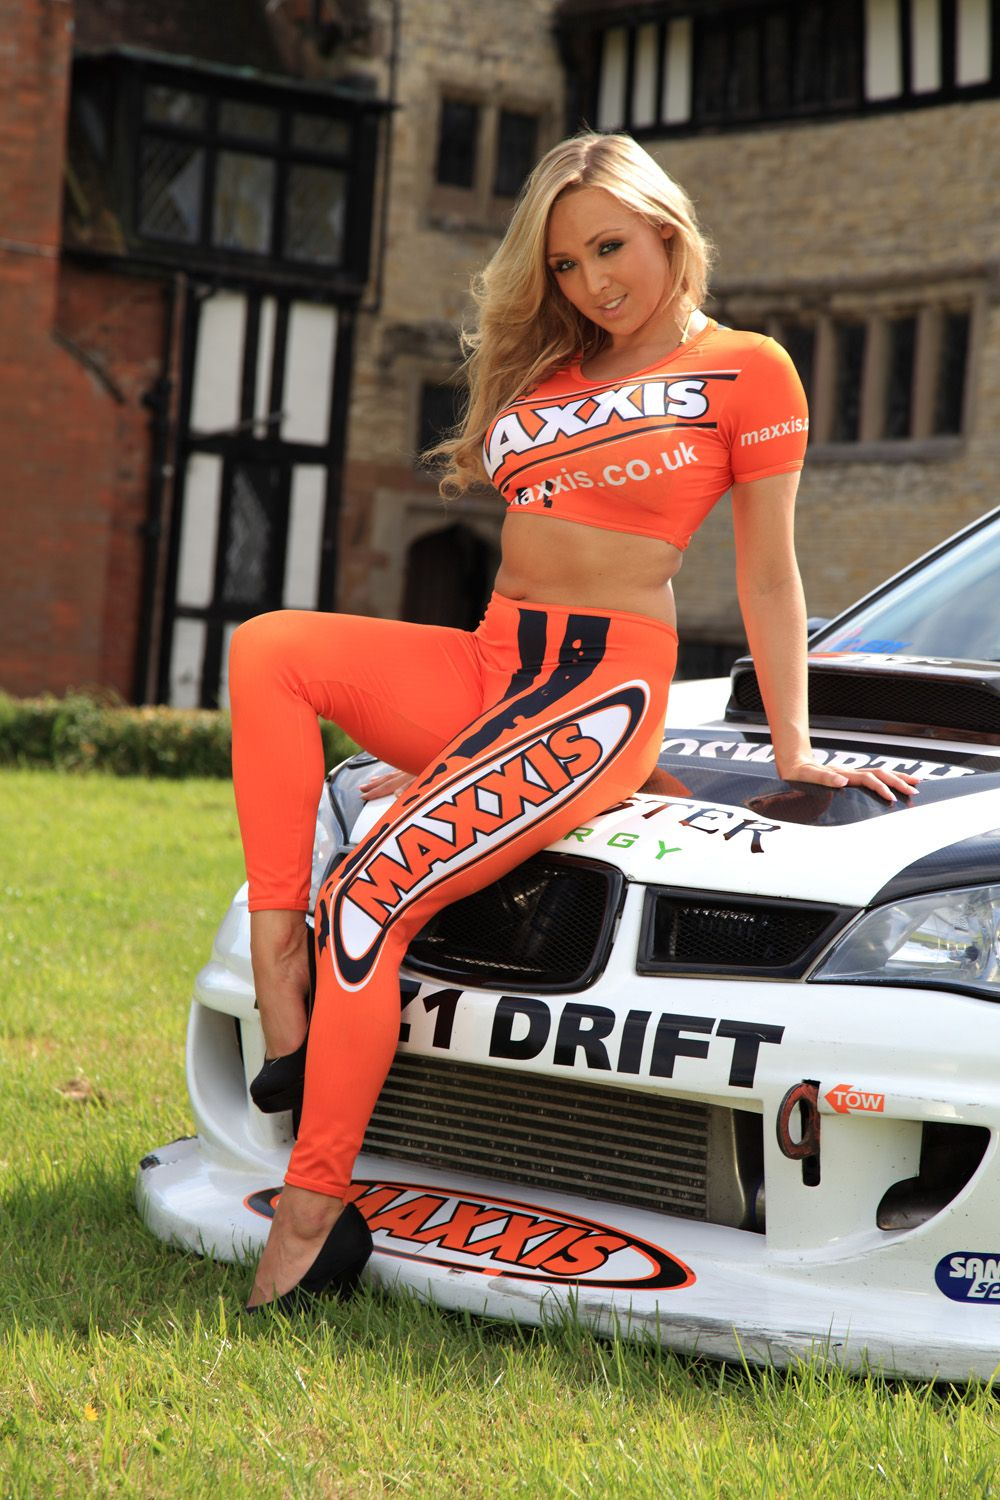 Maxxis Babes photoshoot - Danni King